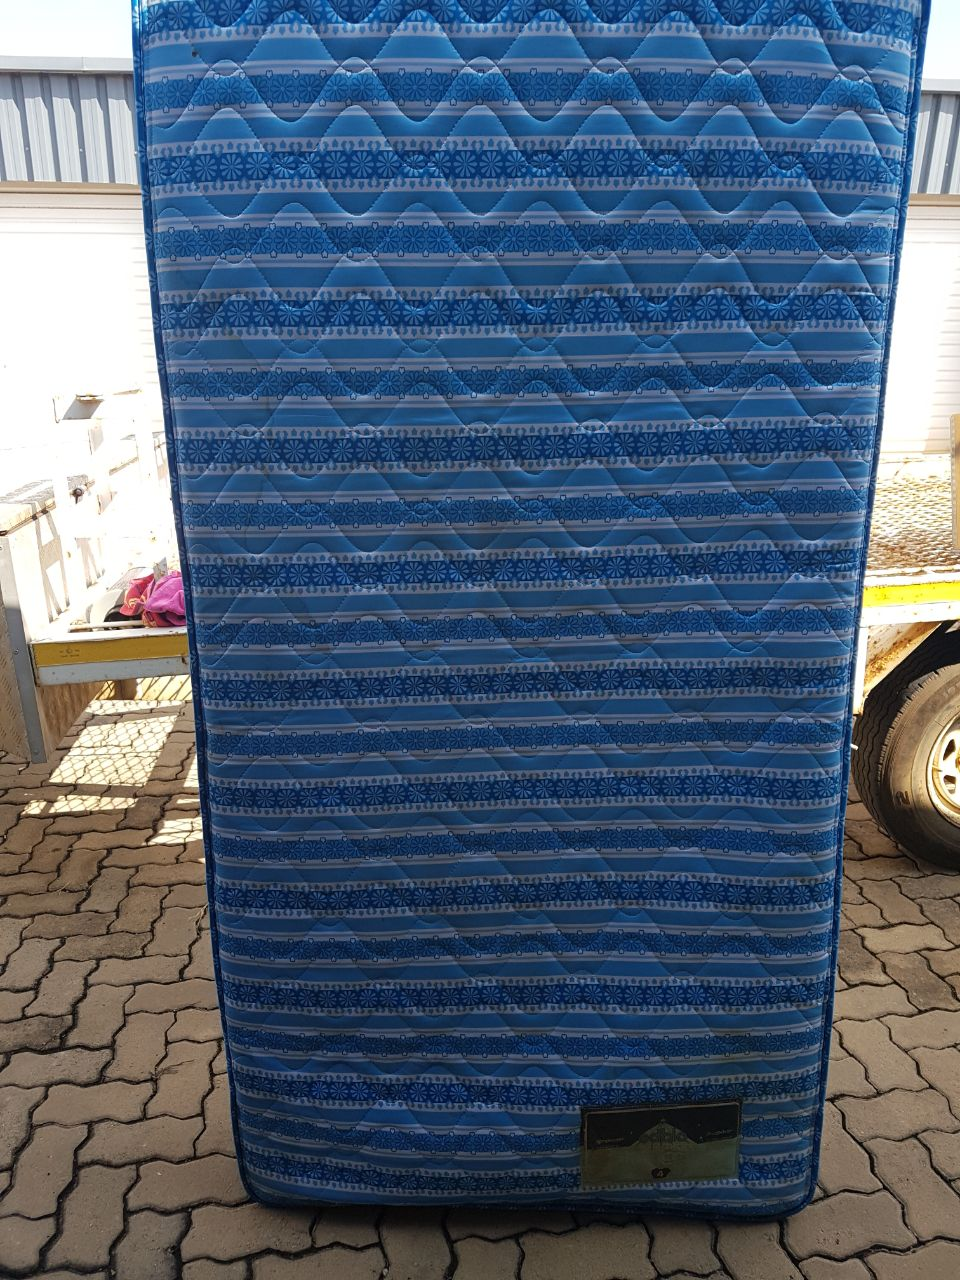 3/4 bed mattress for sale